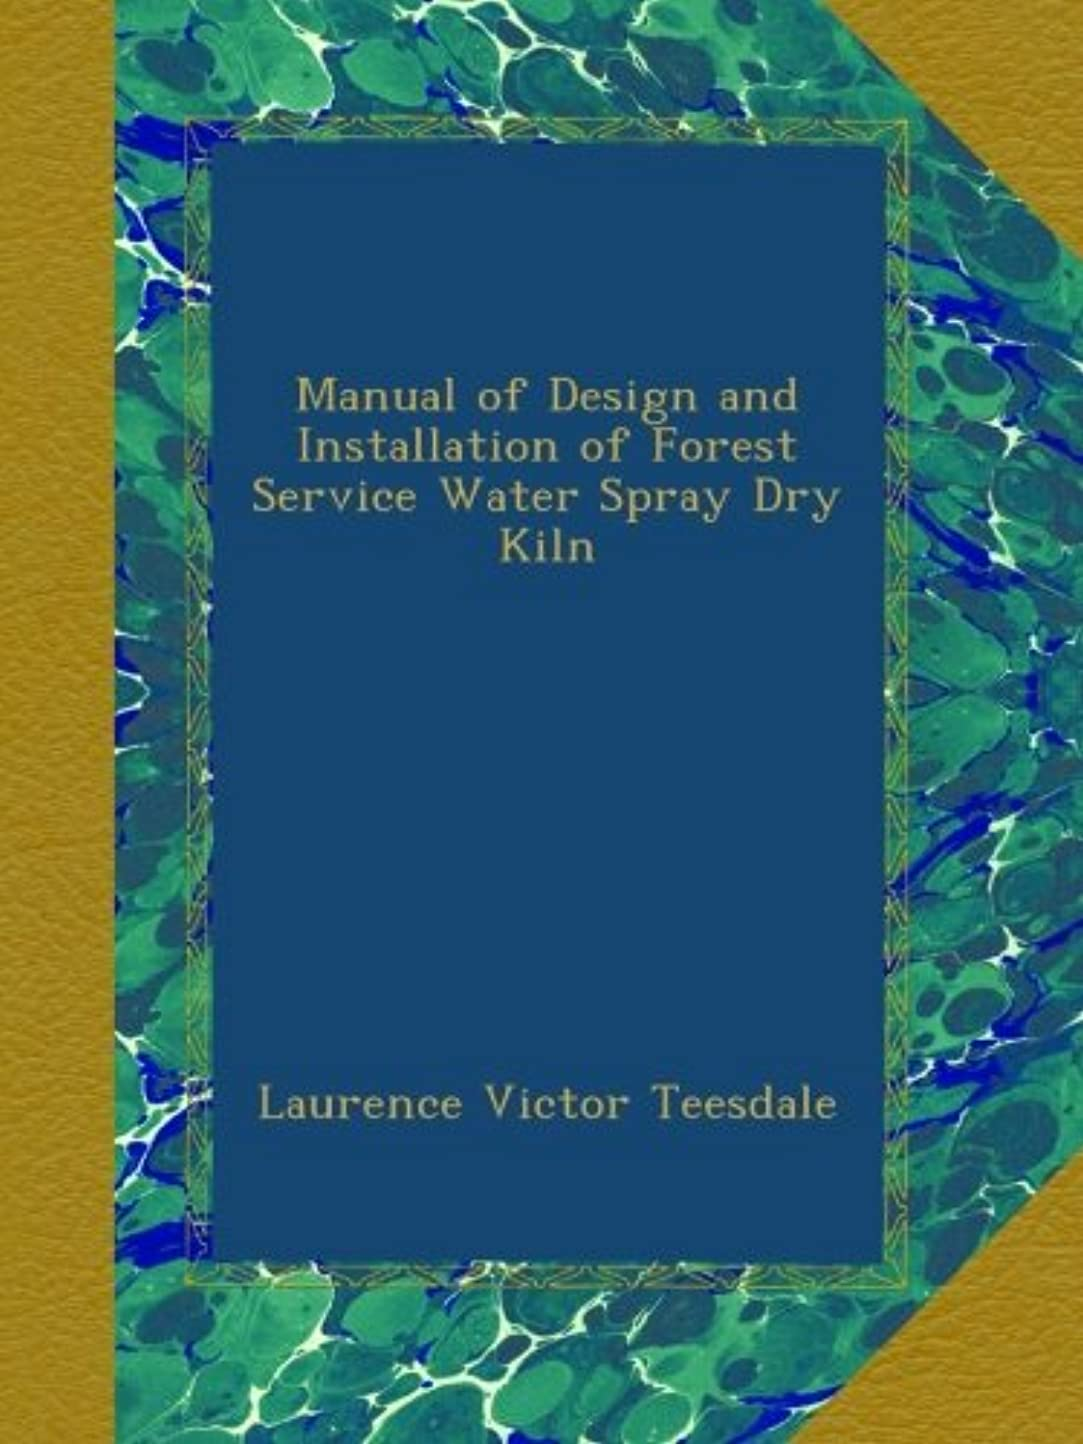 Manual of Design and Installation of Forest Service Water Spray Dry Kiln